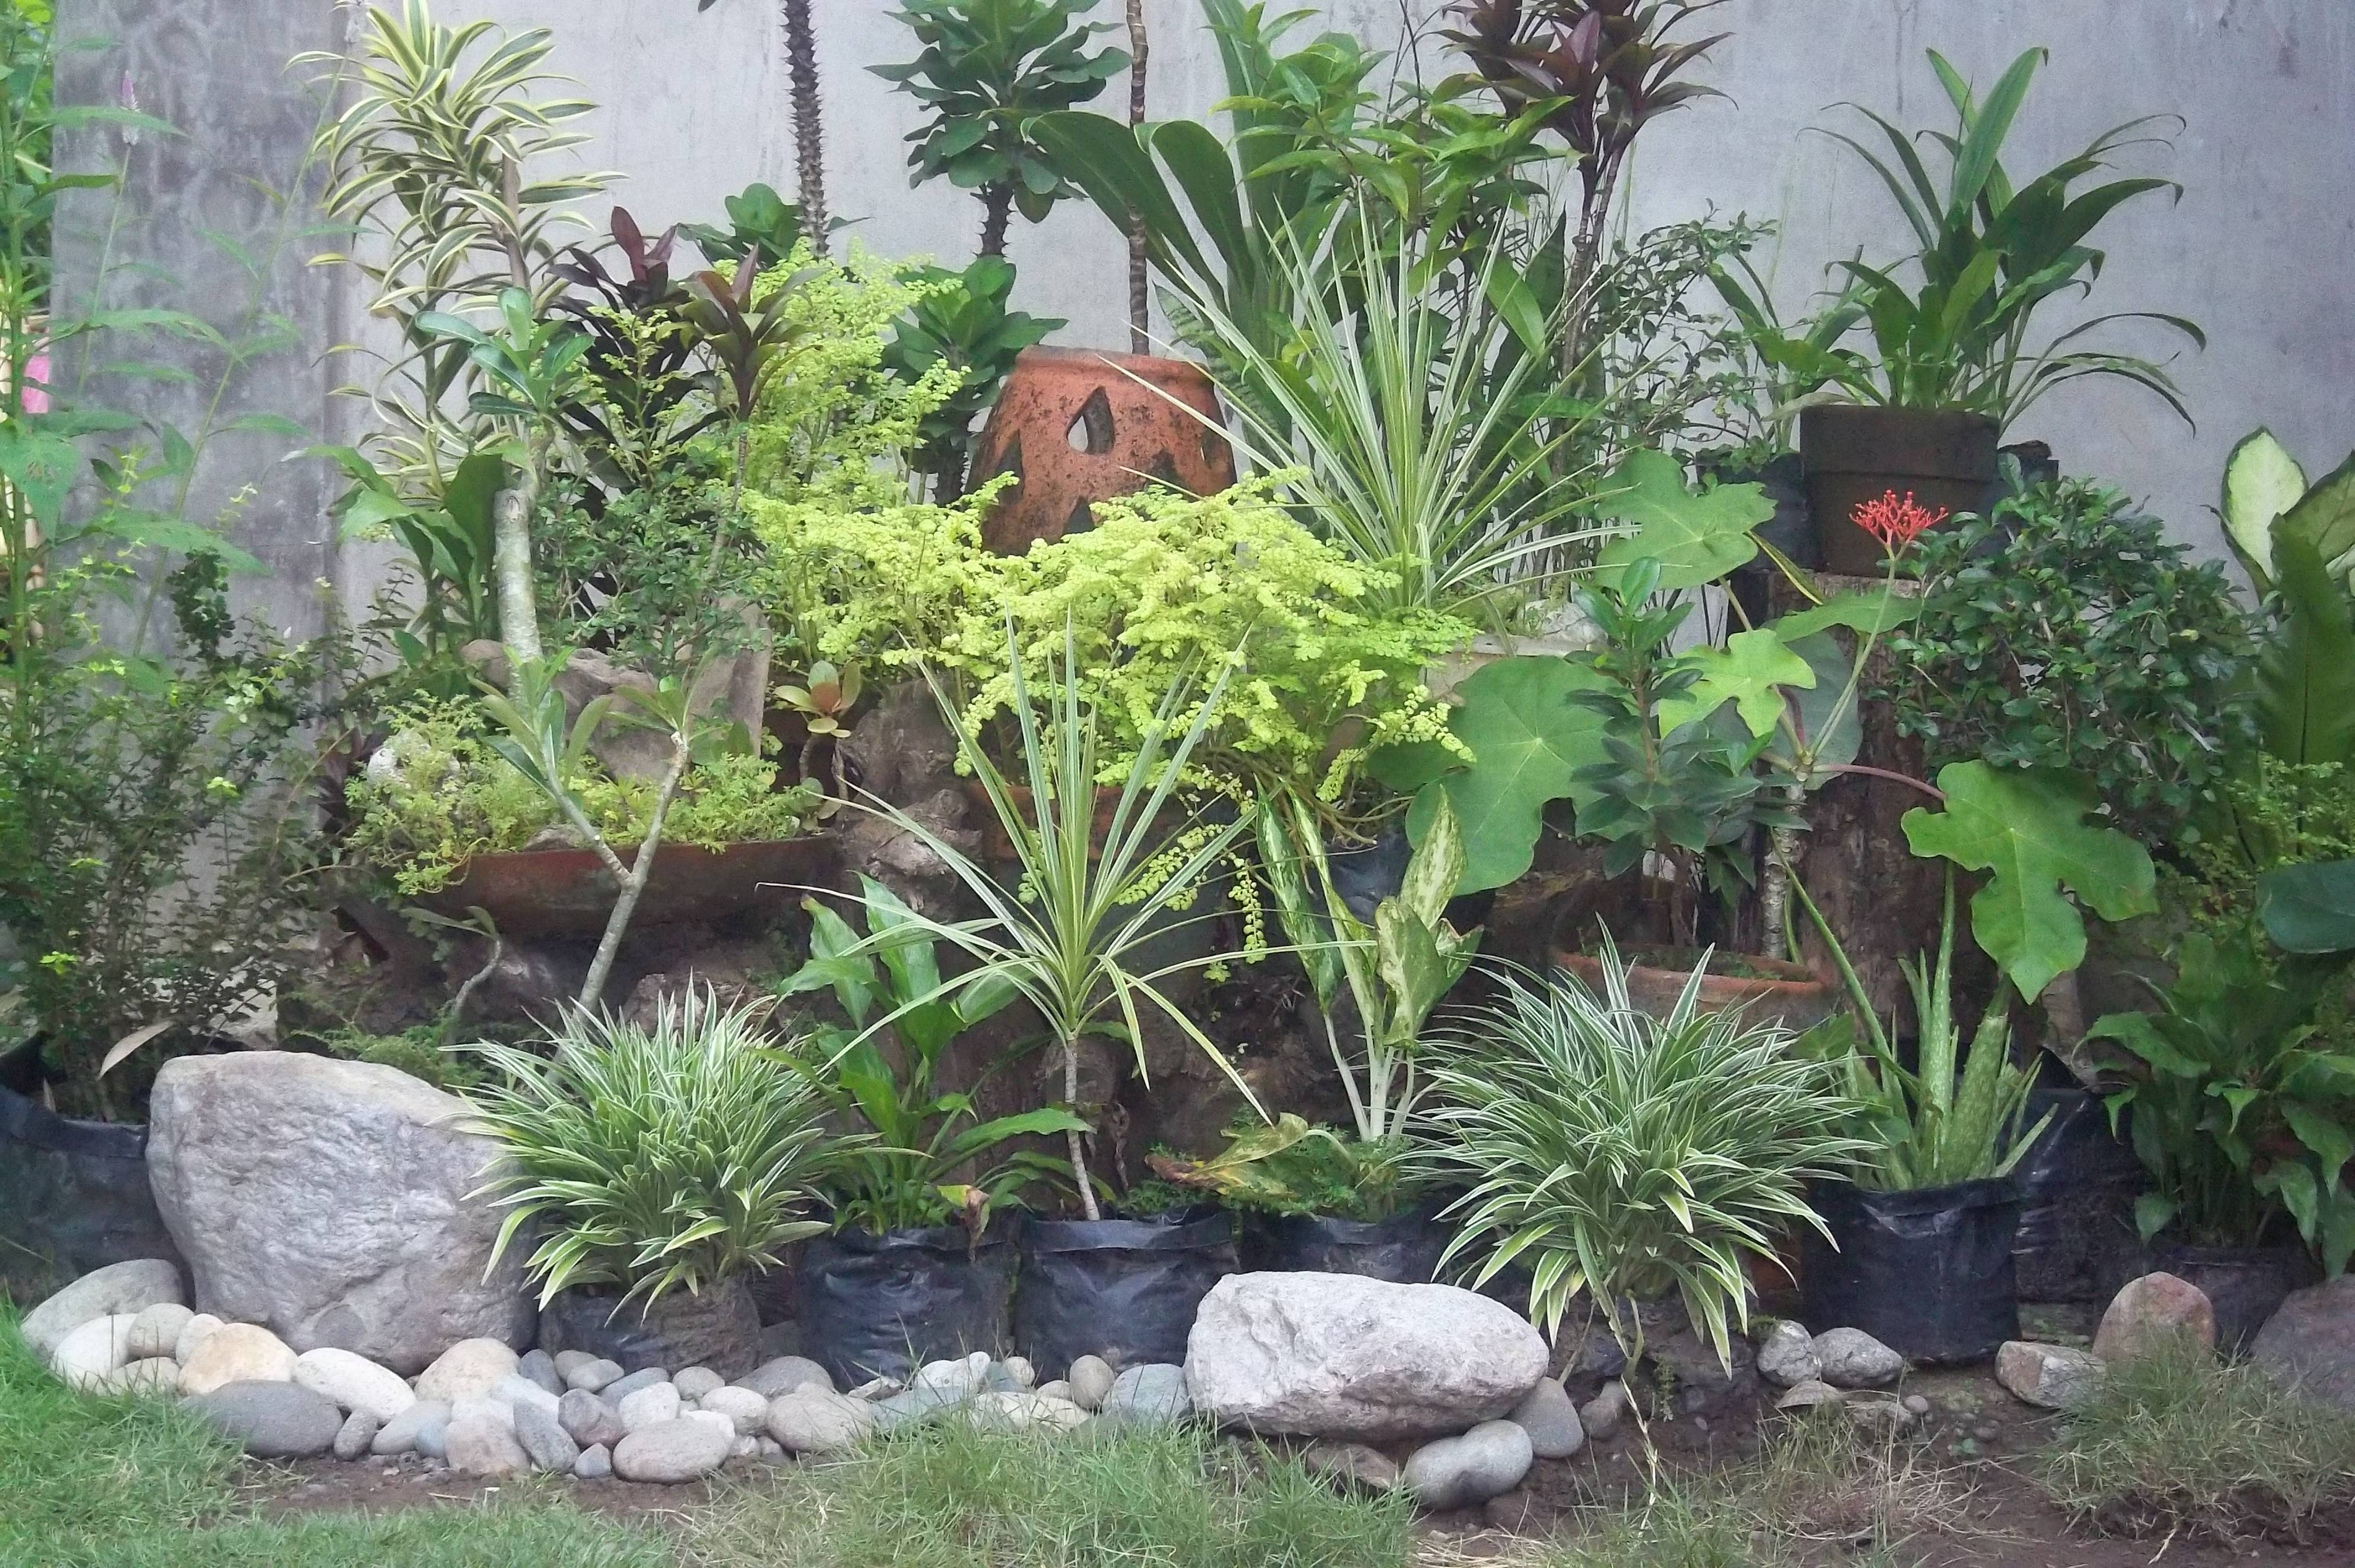 20 facts to know about flowers and plants for rock gardens for Rock garden designs